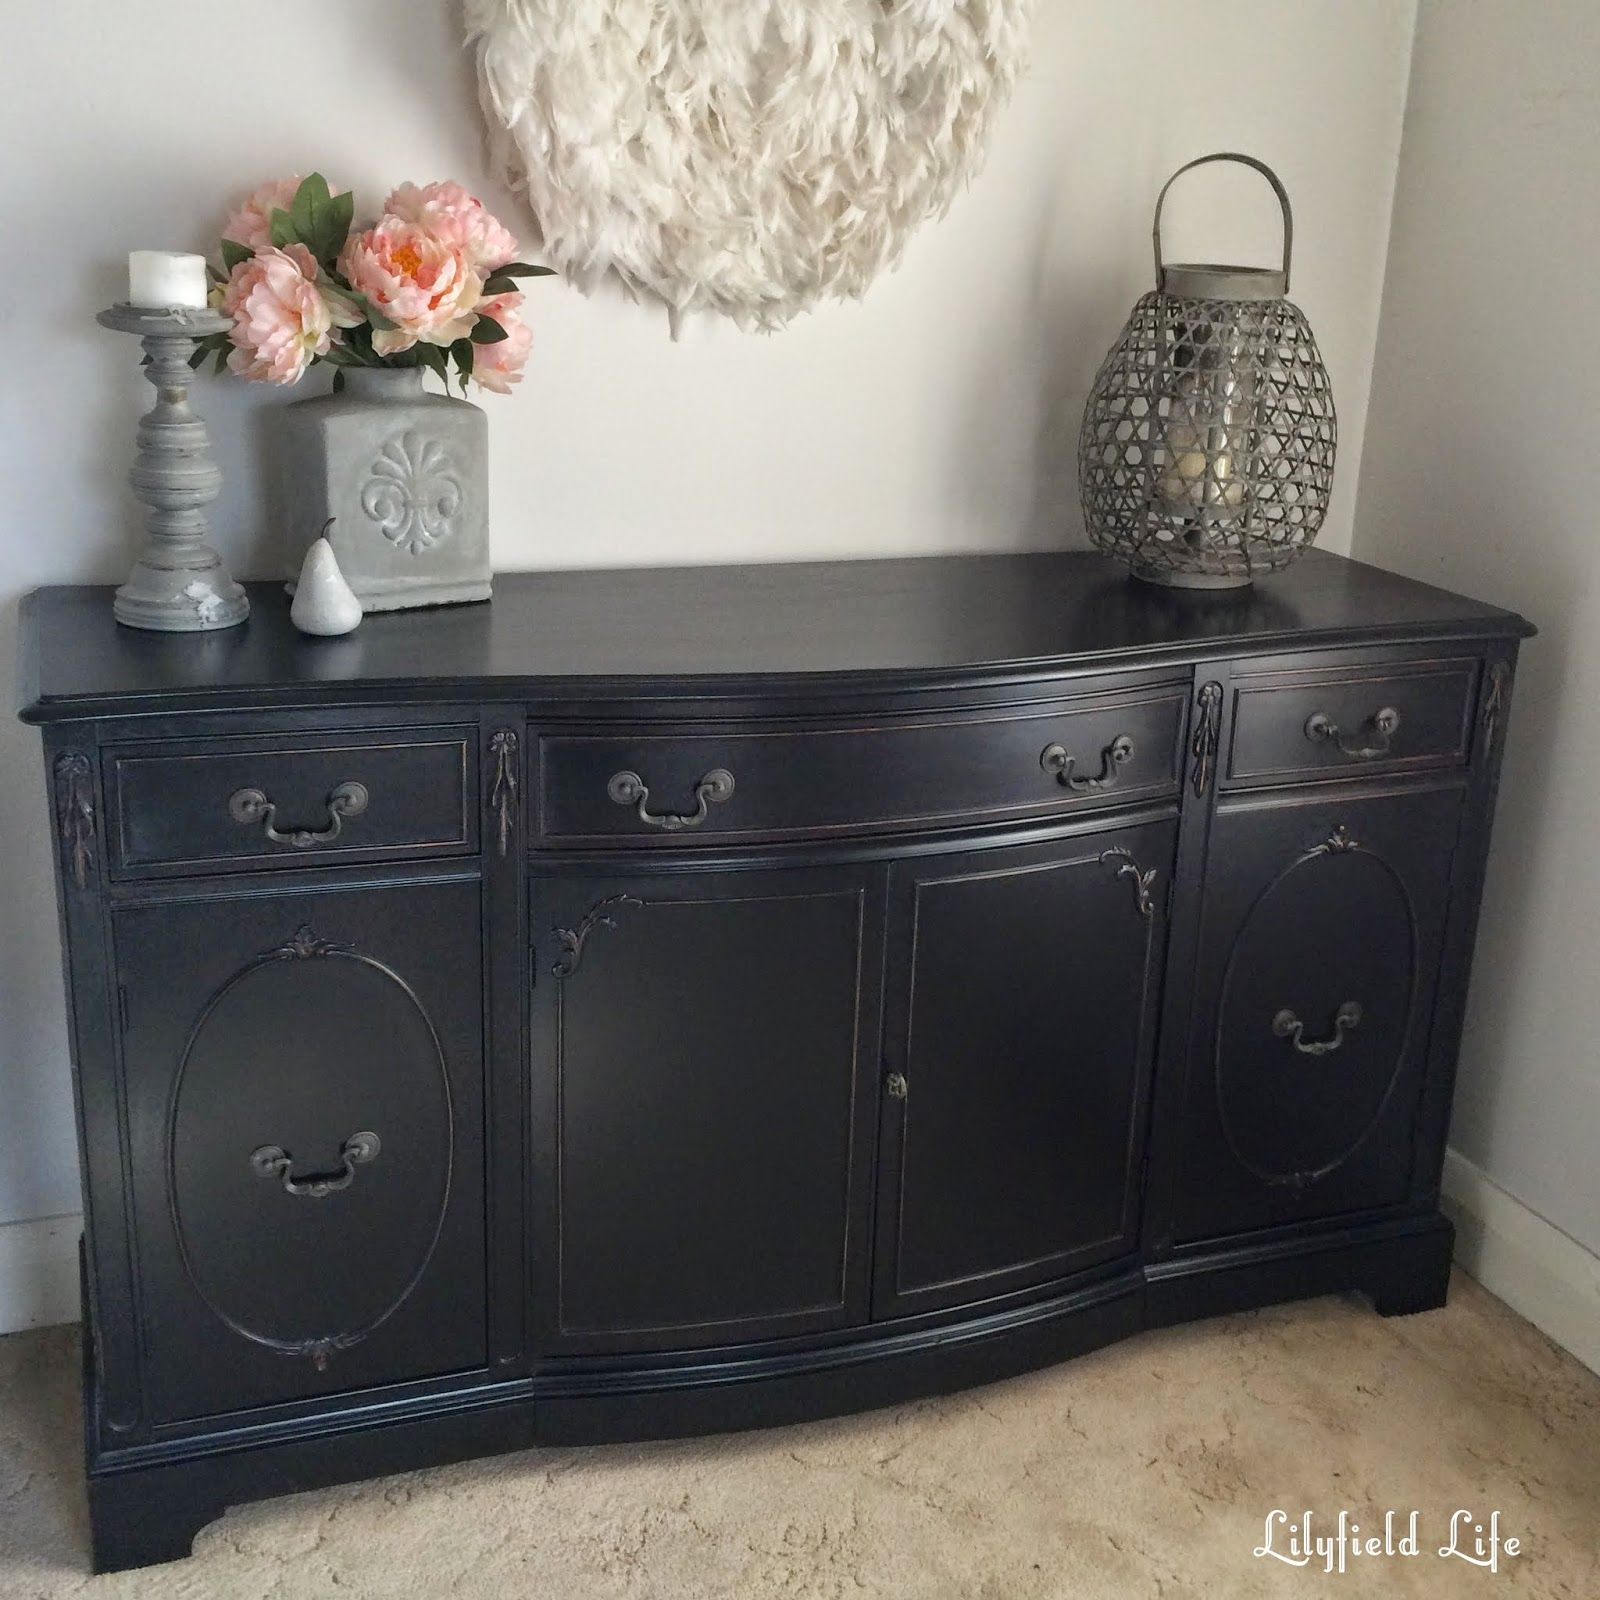 How To Paint Furniture Black Like A Boss Black Painted Furniture Black Chalk Paint Furniture Painting Wood Furniture